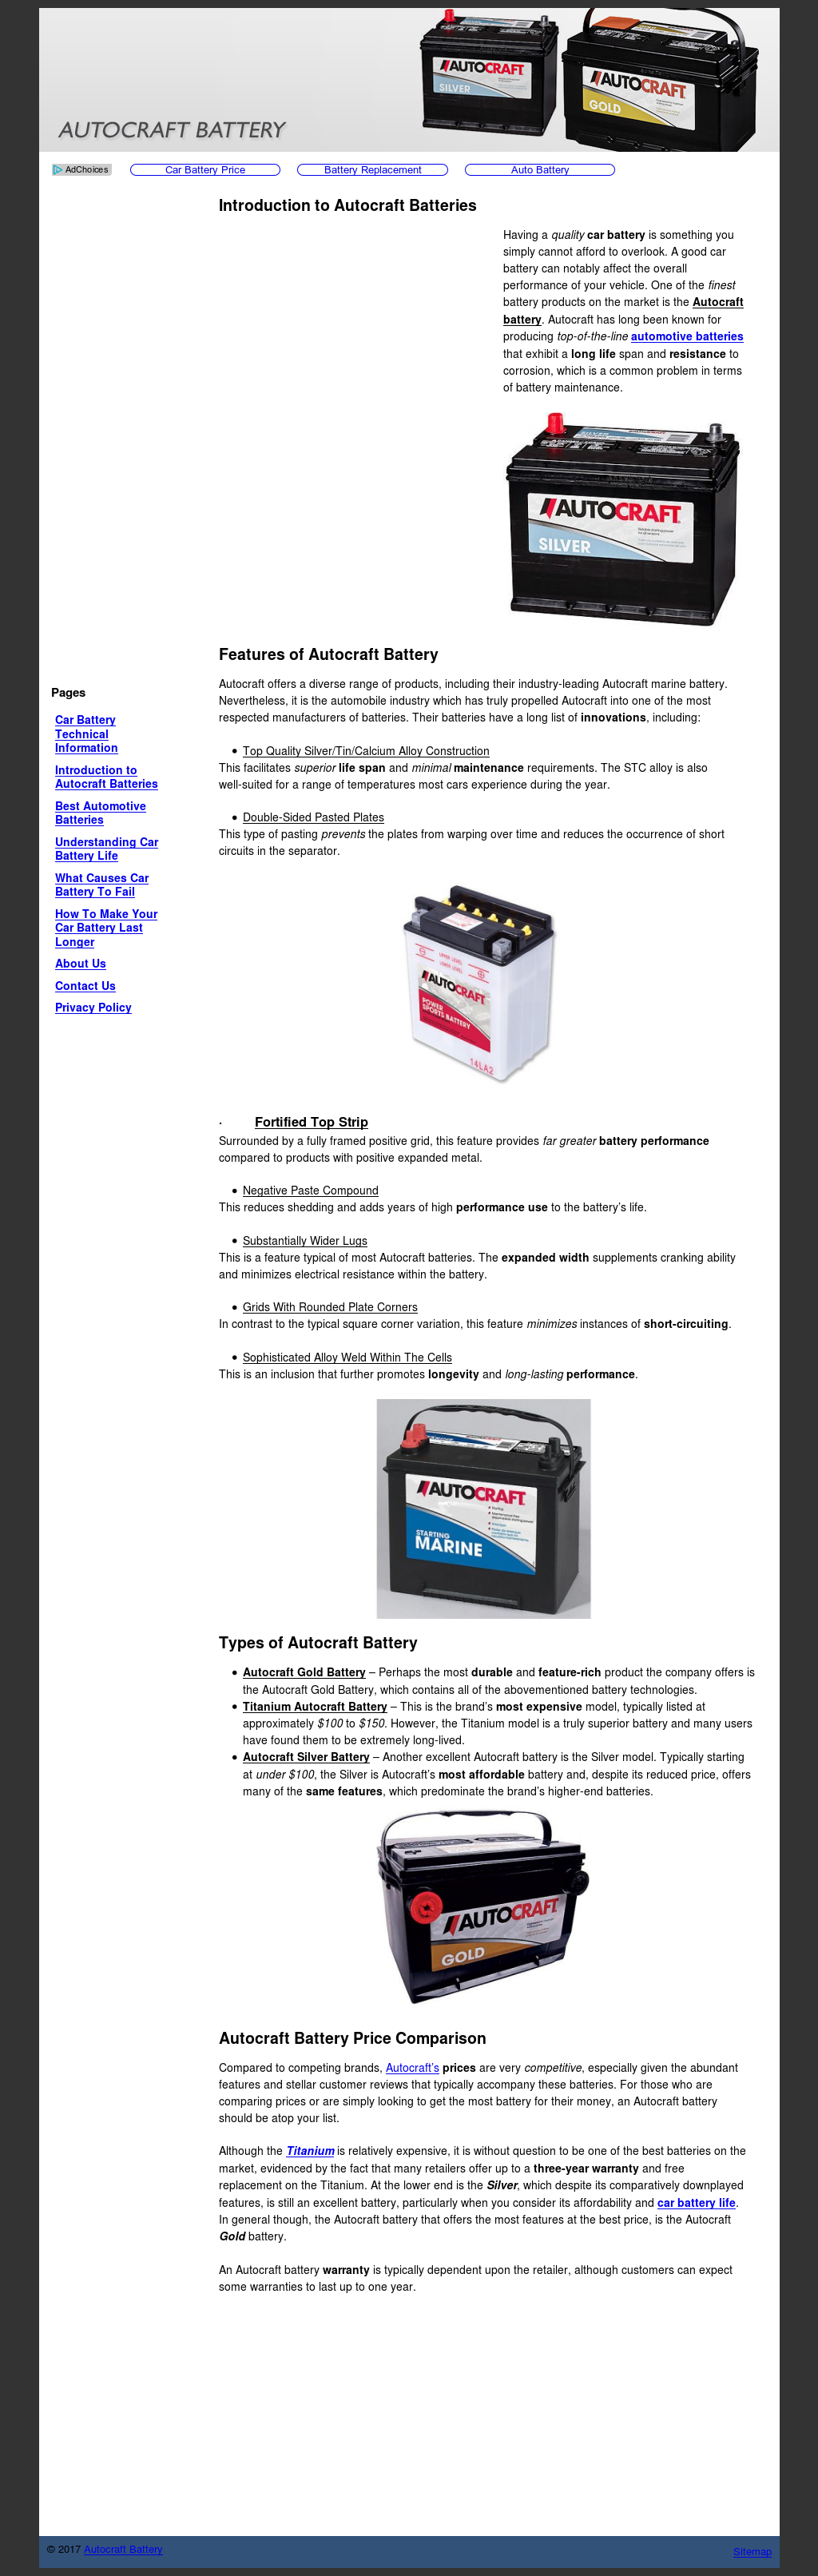 Autocraft Battery Review >> Autocraft Battery Competitors Revenue And Employees Owler Company